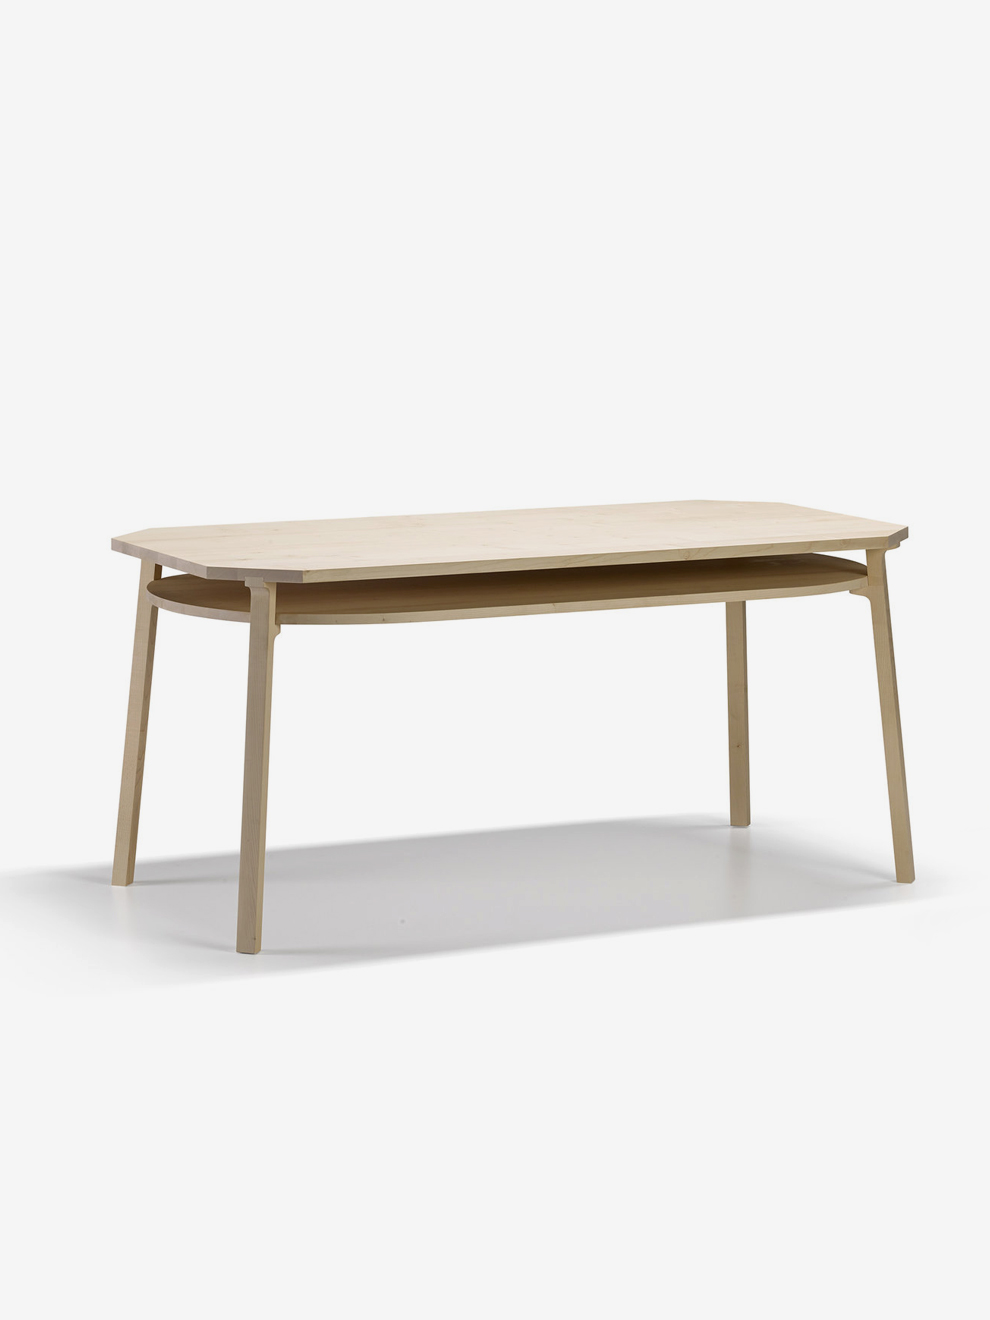 Vandasye_Duo-Table_02_Photo-©-Adolf-Bereuter